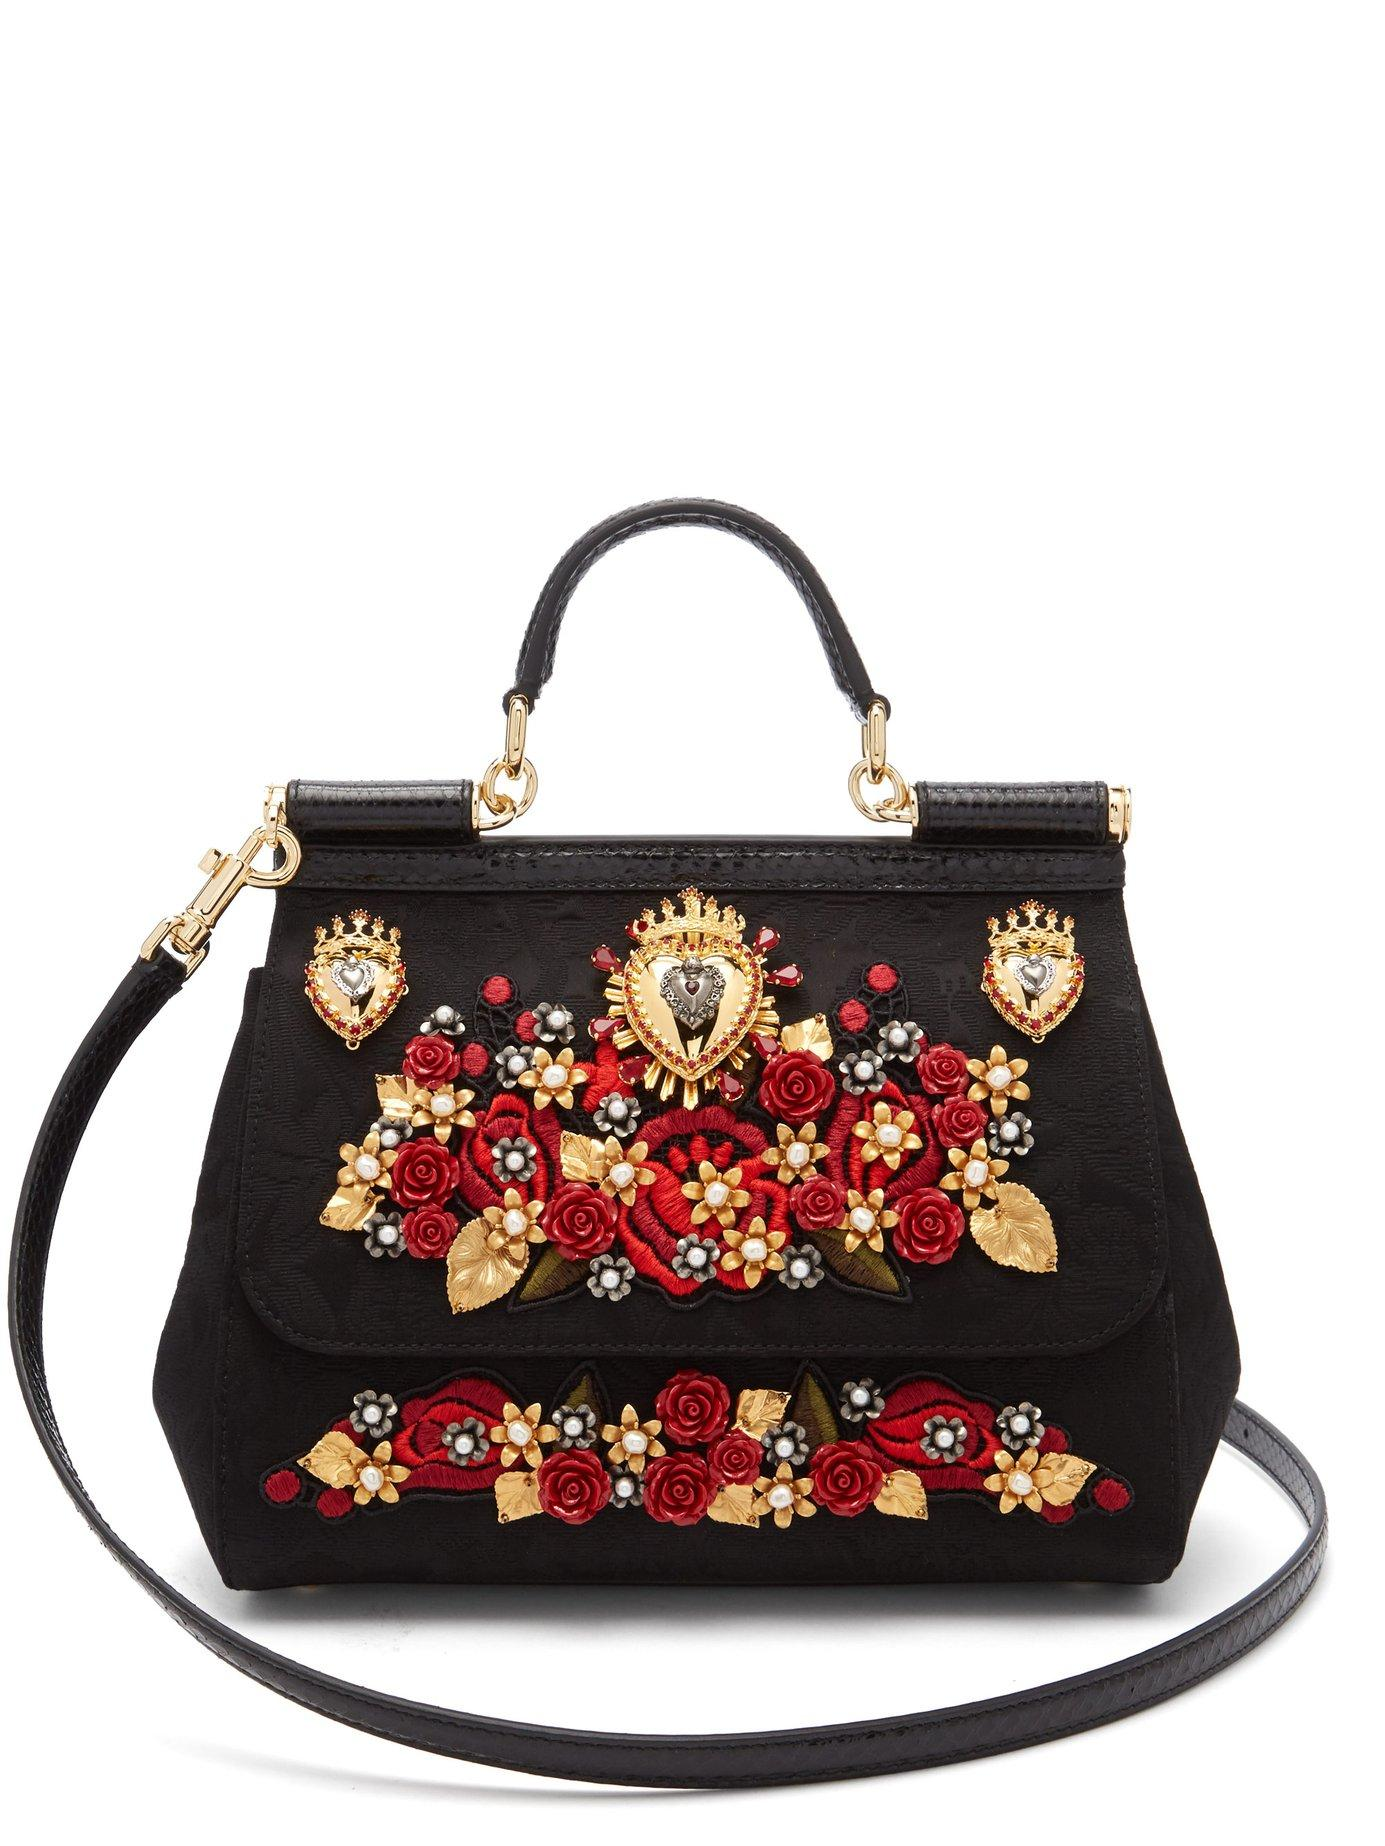 30756e9f06 Lyst - Dolce   Gabbana Sicily Ayers   Brocade Cross Body Bag in Black